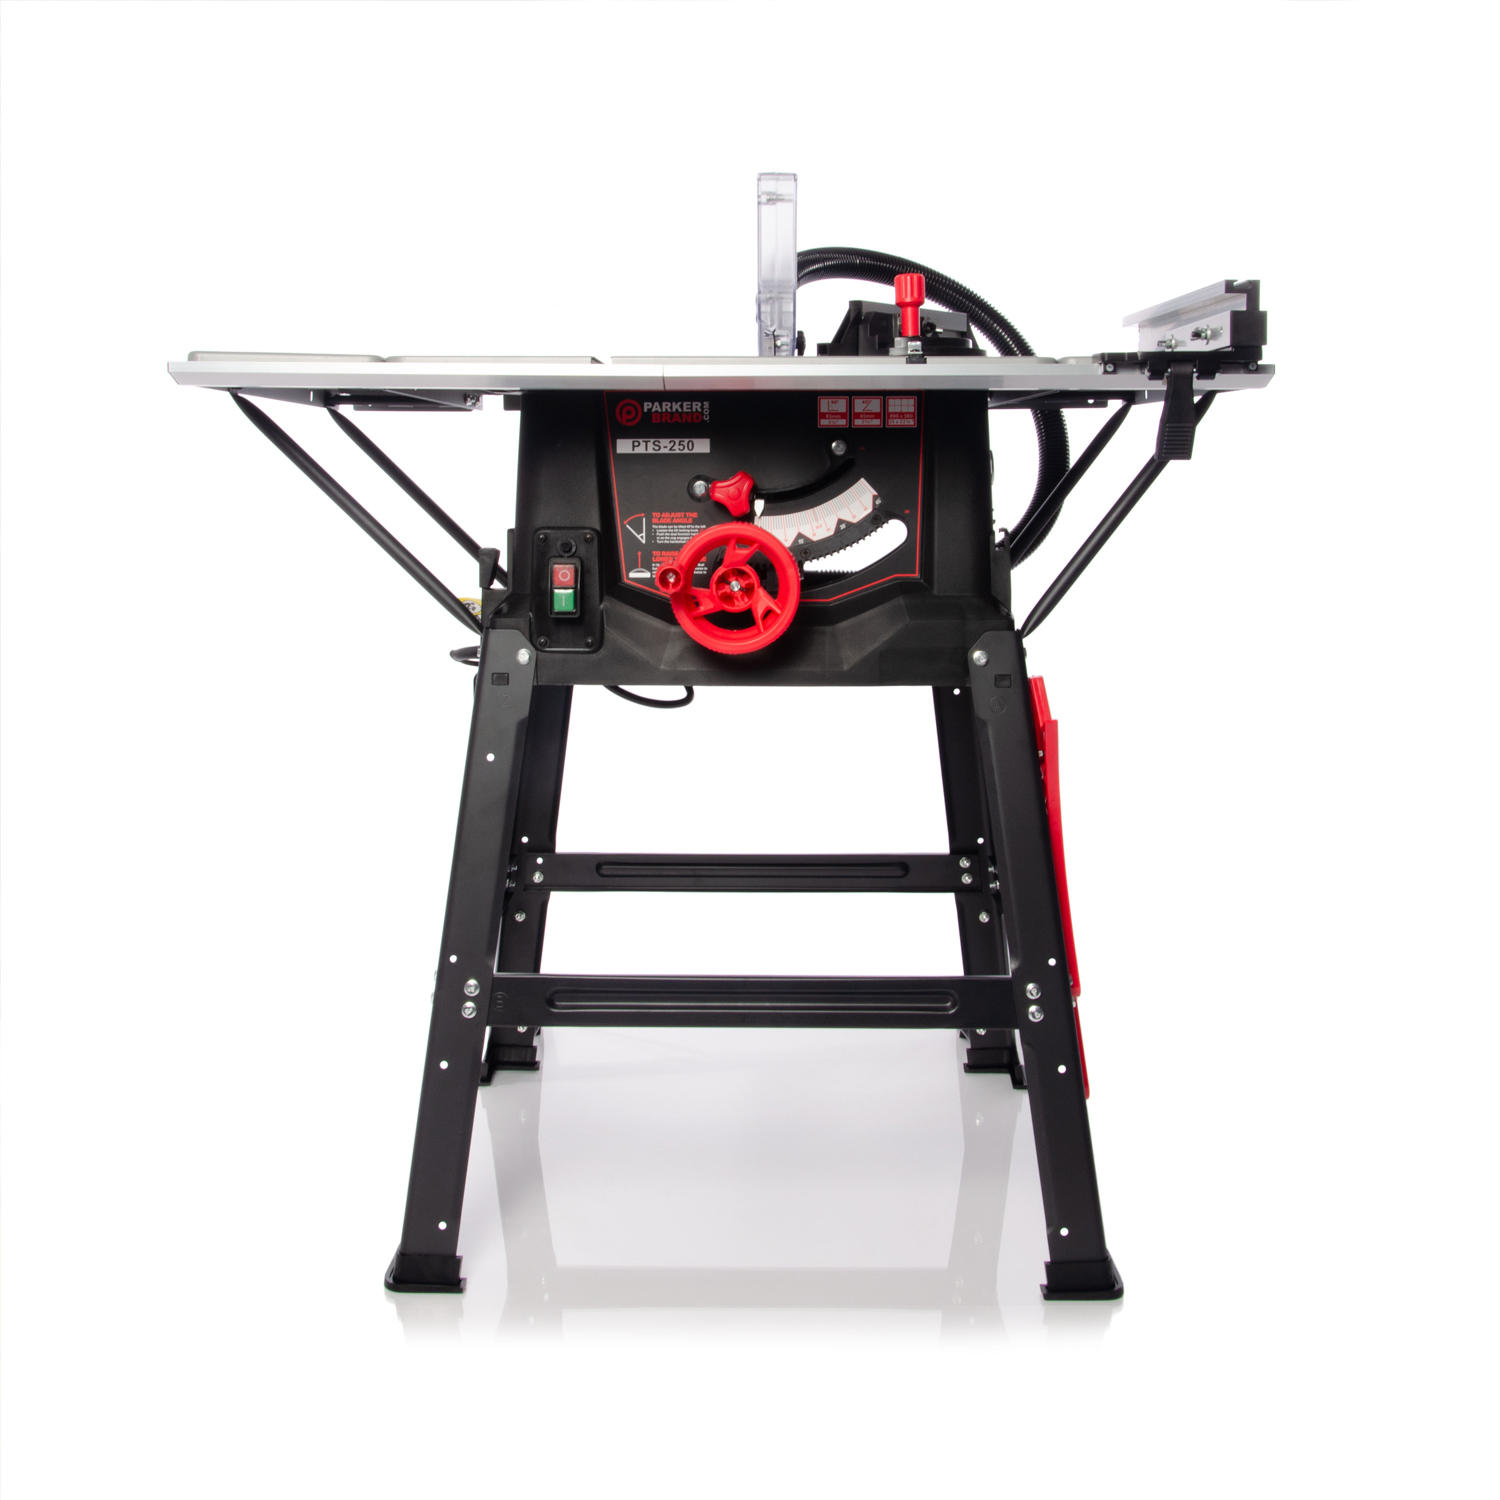 ParkerBrand PTS-250: Get More From Your Table Saw